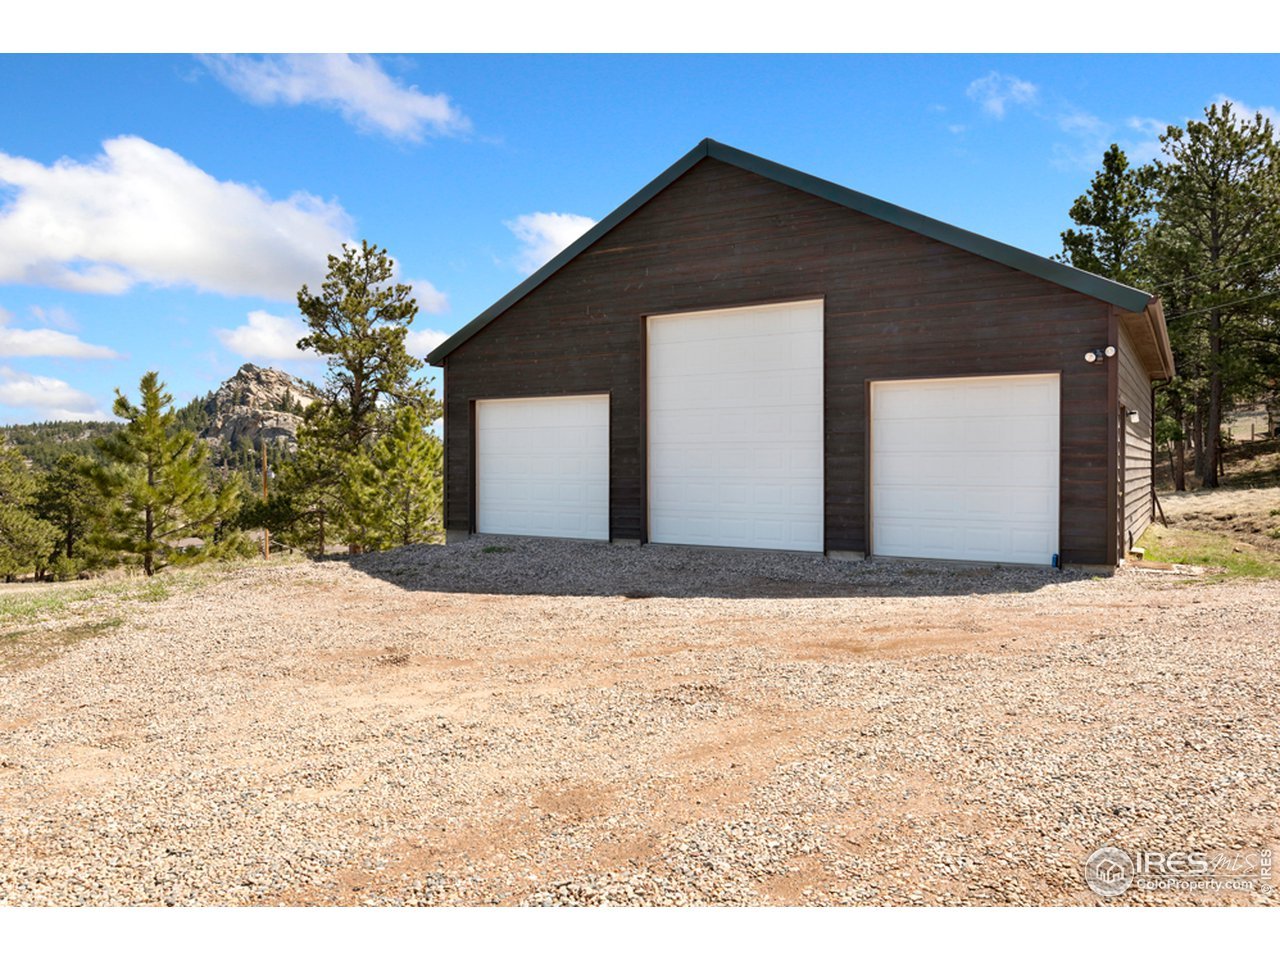 Situated on over 4 acres